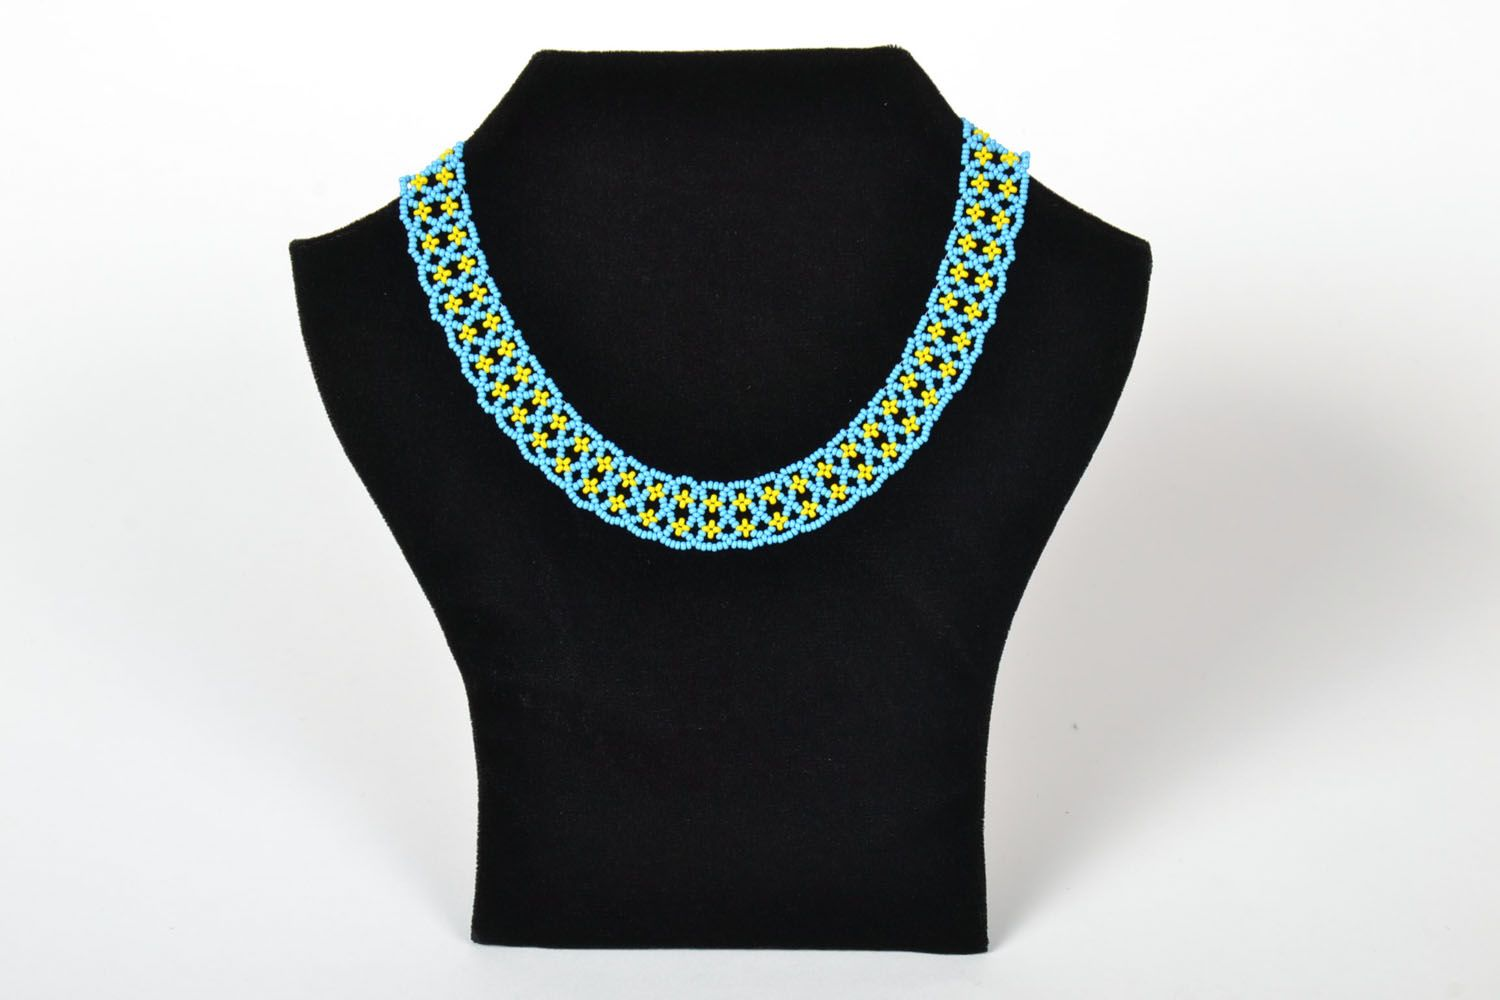 Beaded necklace photo 1